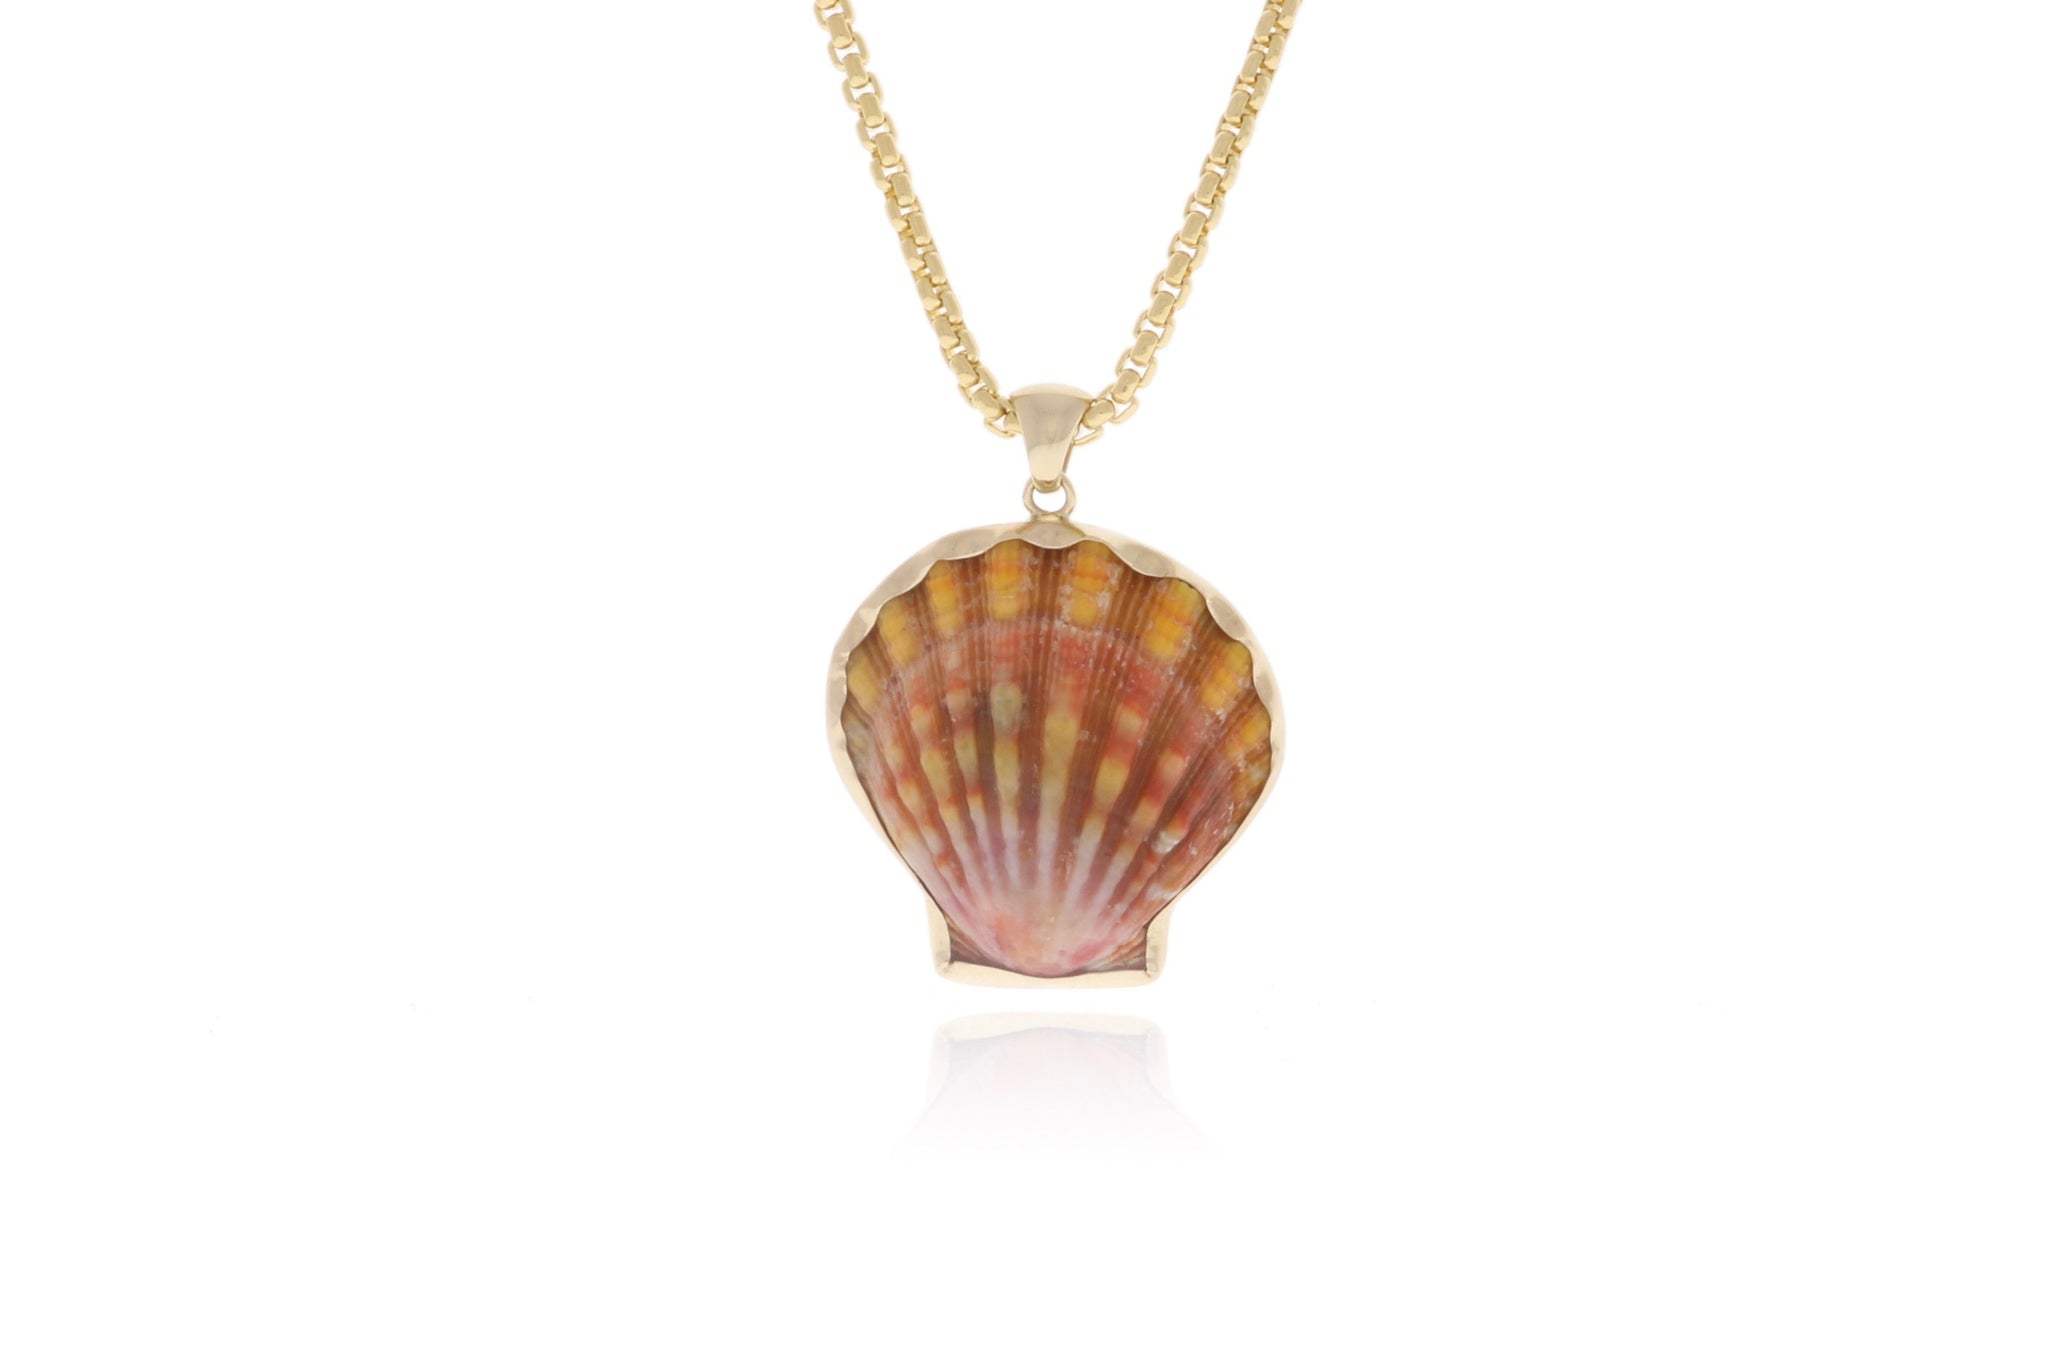 Vibrant Red Sunrise Shell Pendant in Gold